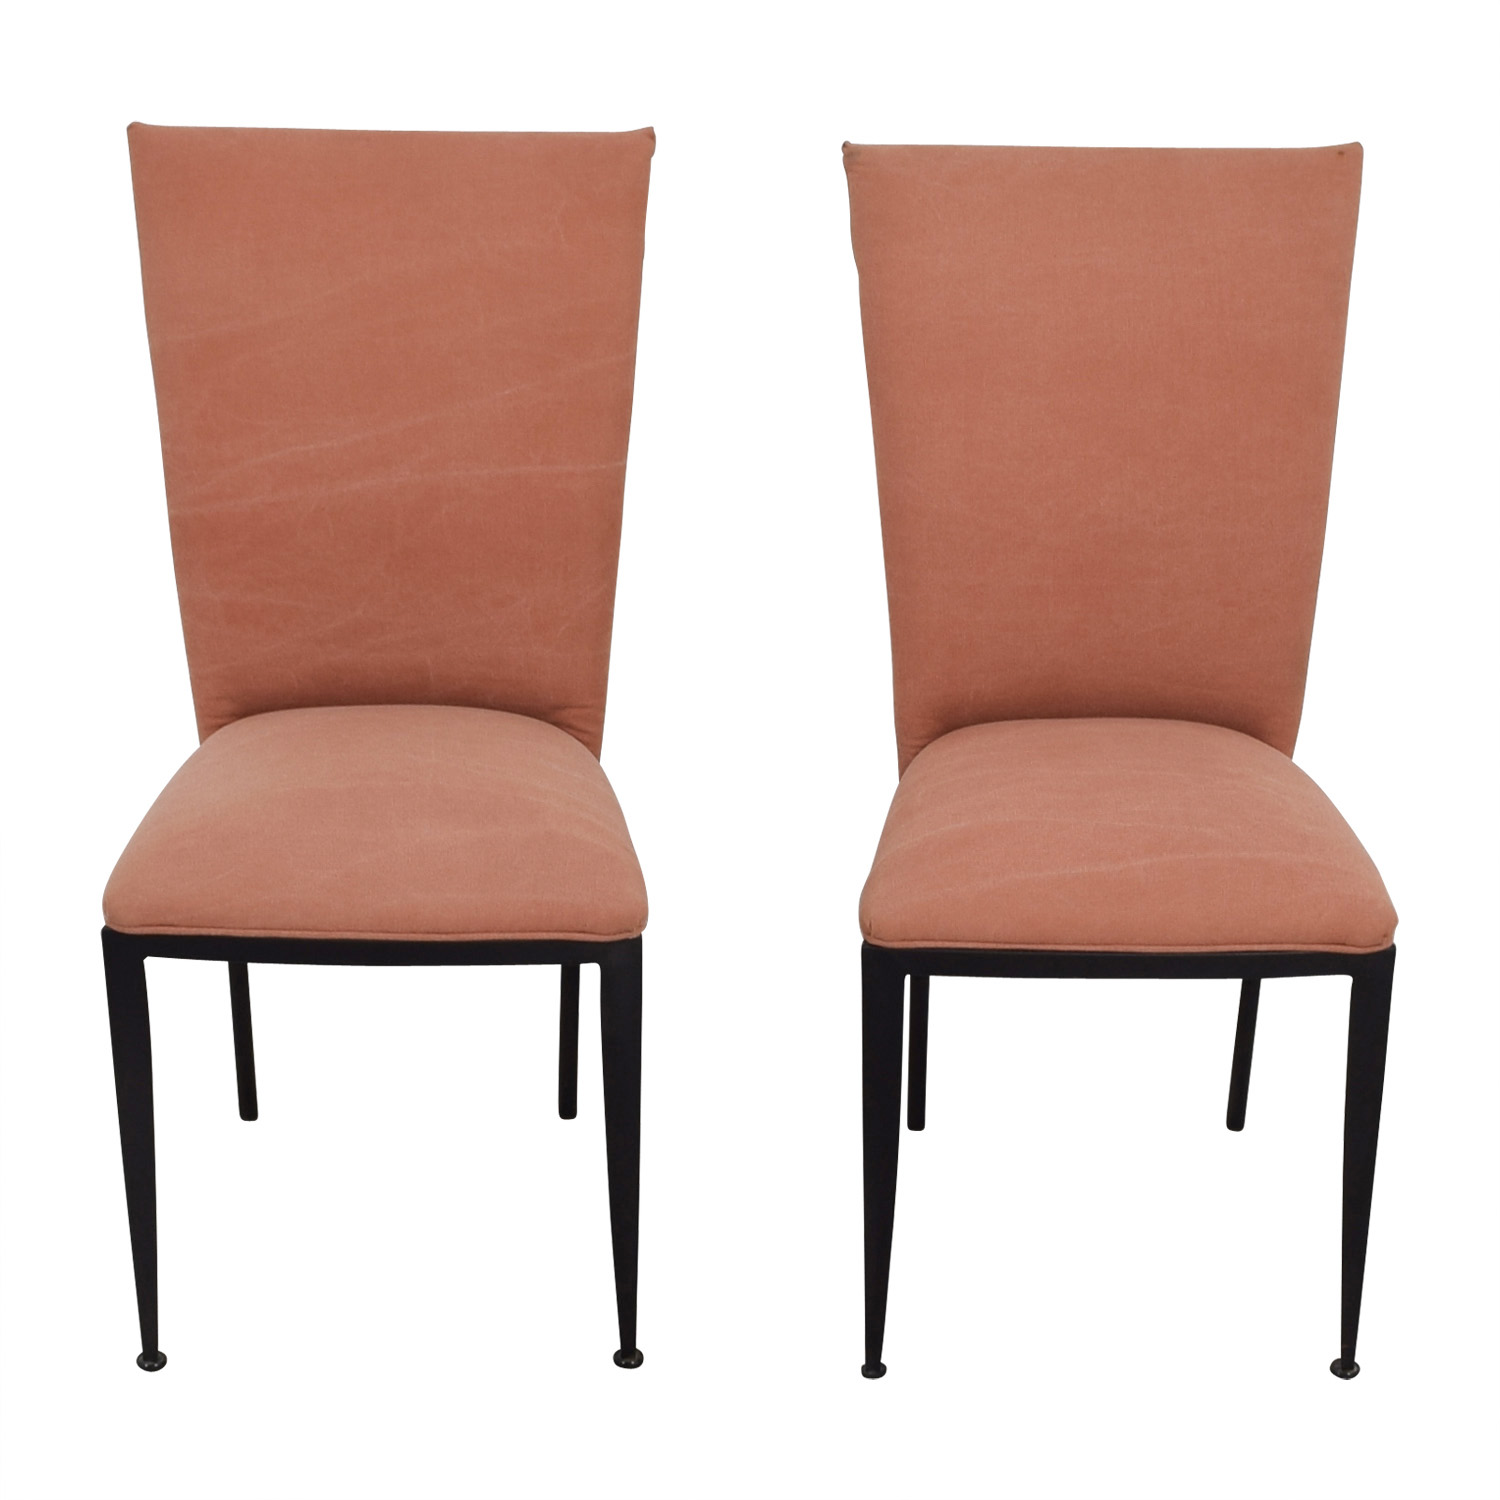 Marshalls Furniture Chairs 77 Off Marshall Fields Marshall Fields Pink Upholstered